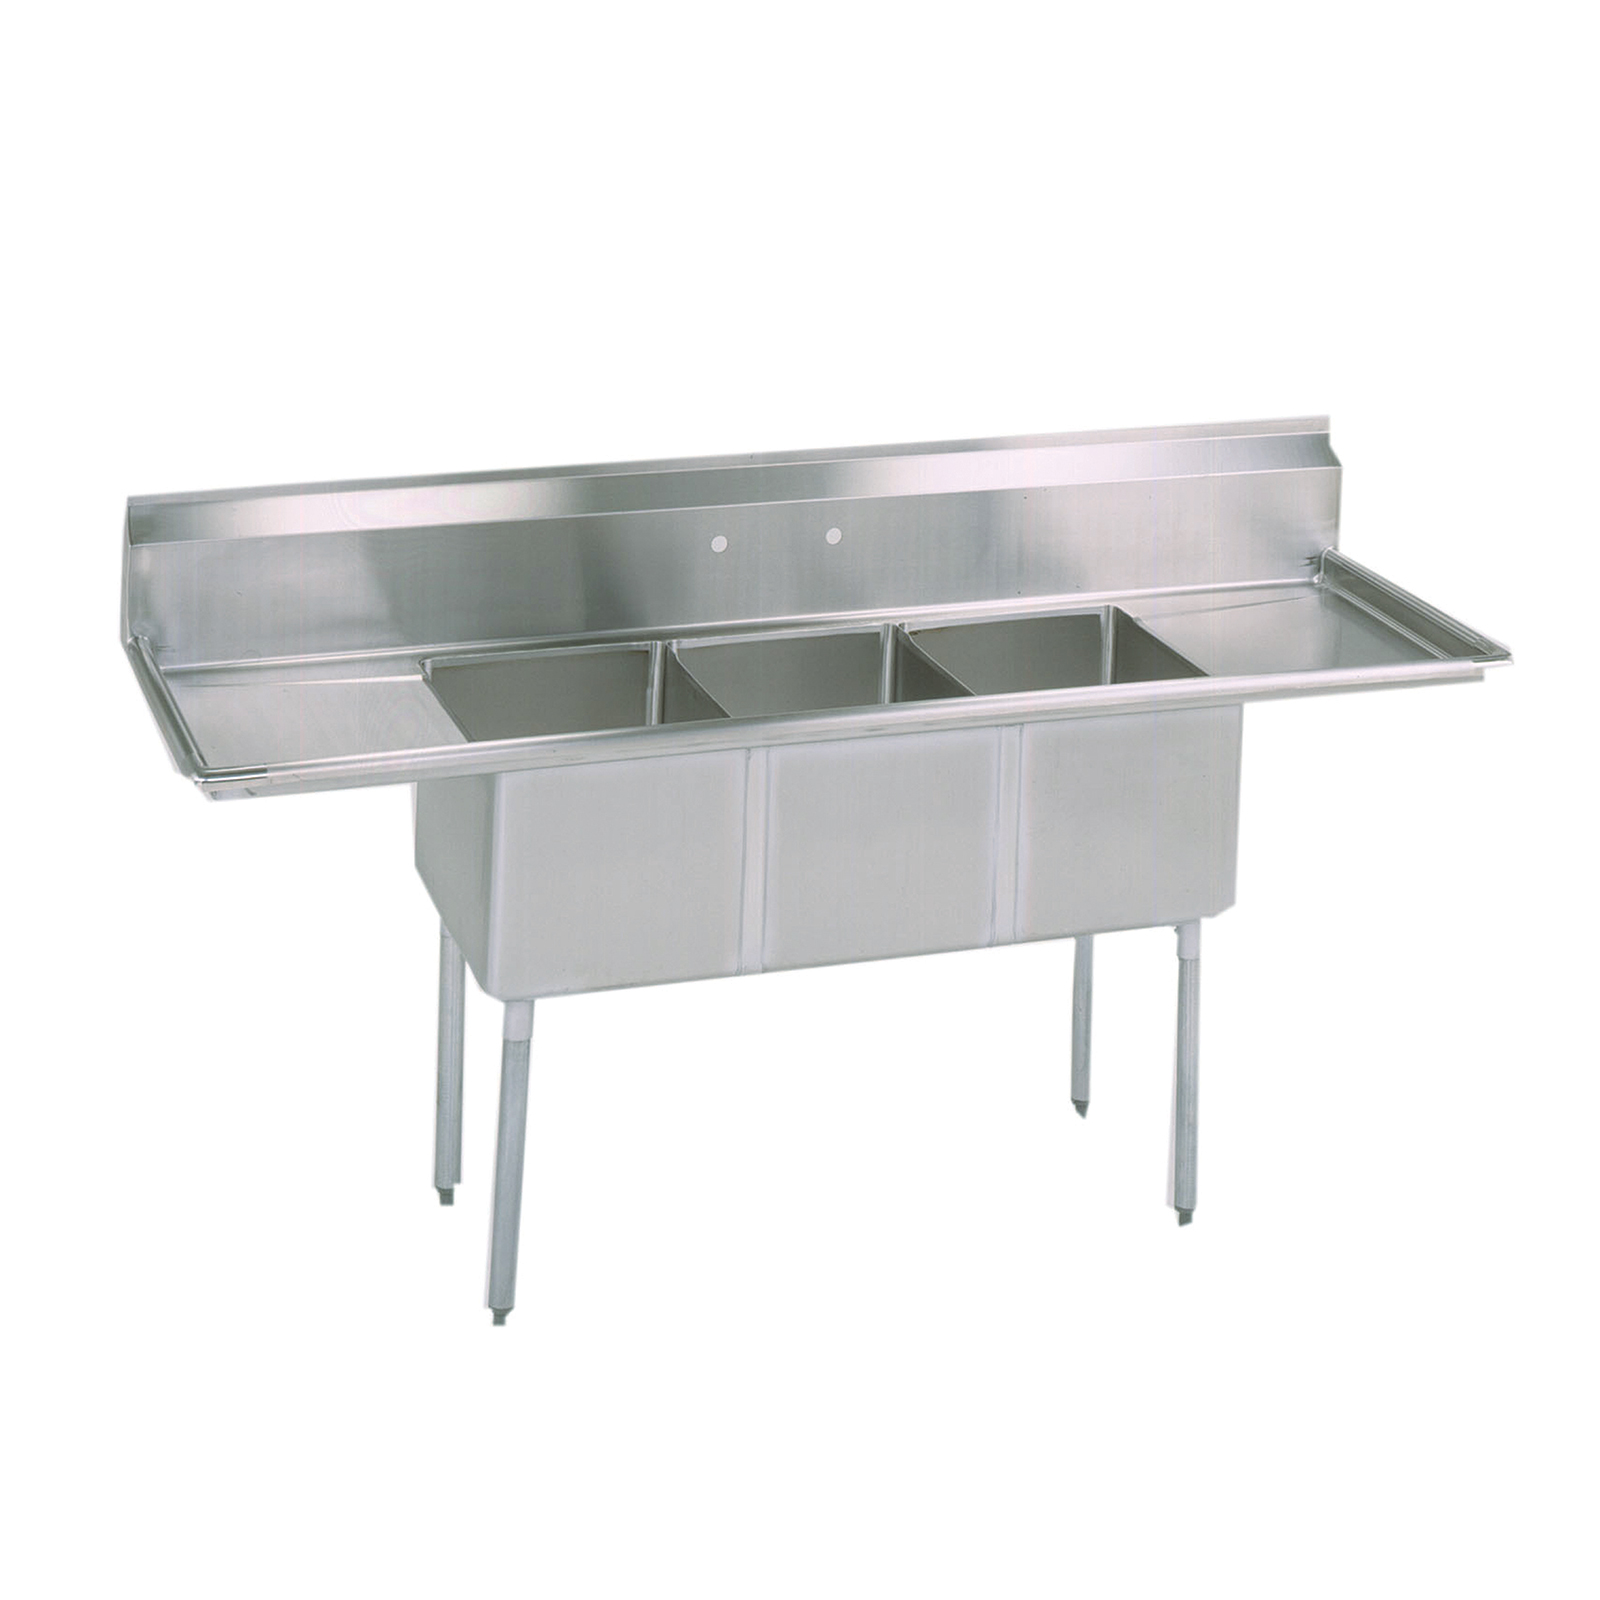 BK Resources BKS-3-2030-12-20TS sink, (3) three compartment